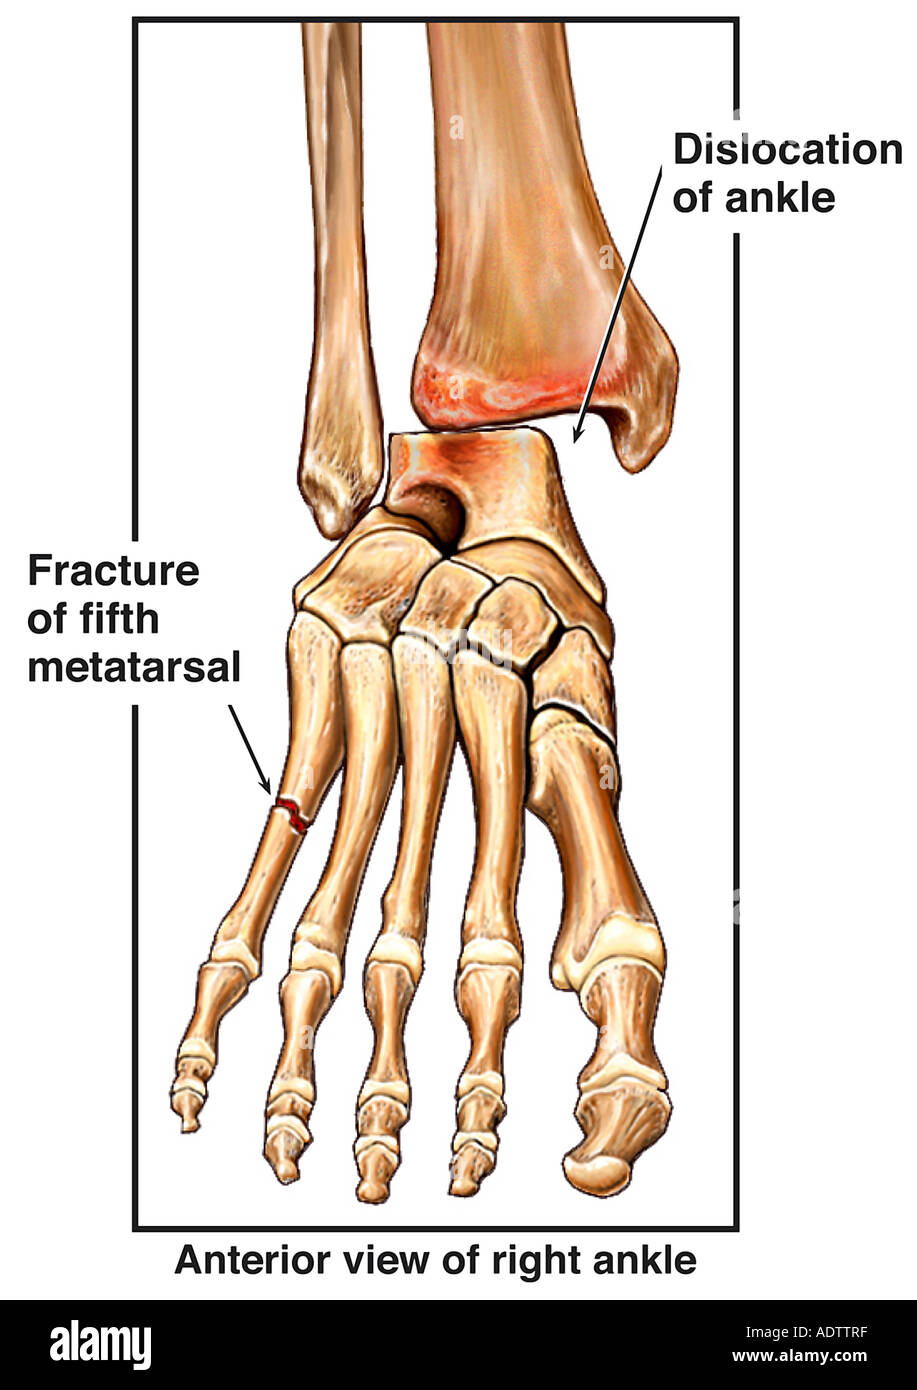 fractured (broken) foot bone and dislocated ankle joint stock, Human Body